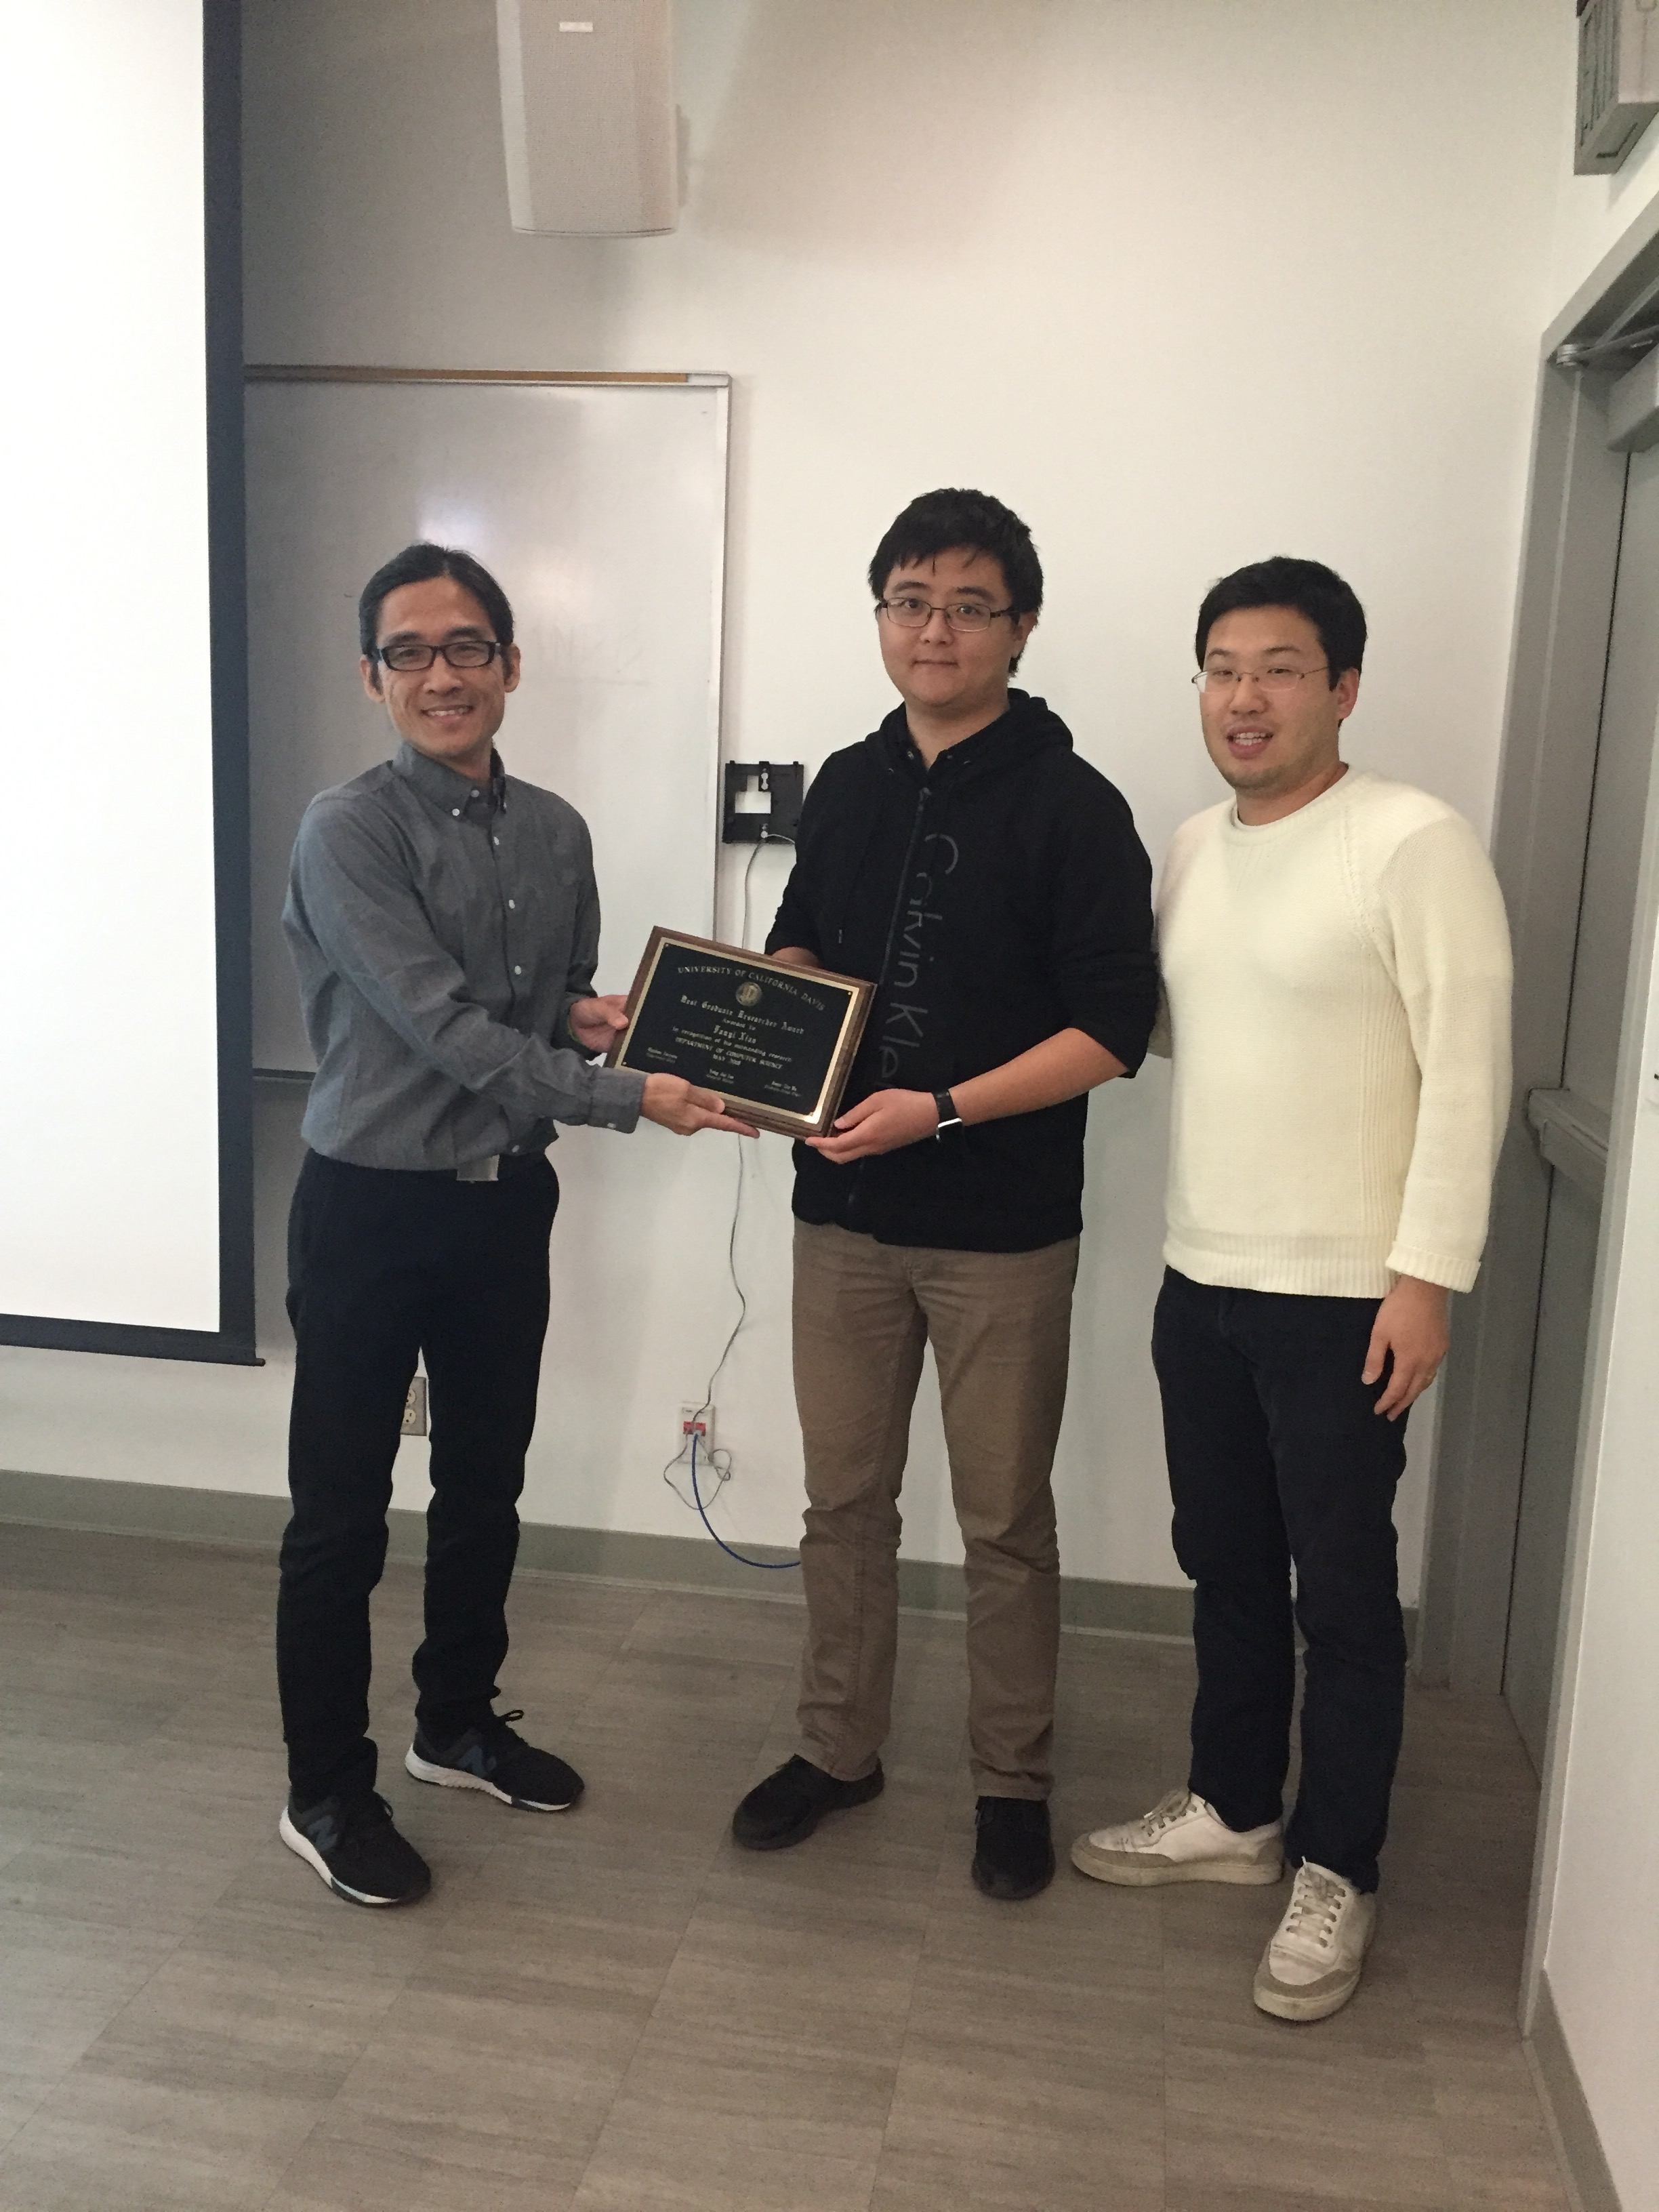 Congratulations to PhD student Fanyi Xiao for winning the Best Graduate Researcher in Computer Science 2018 award.